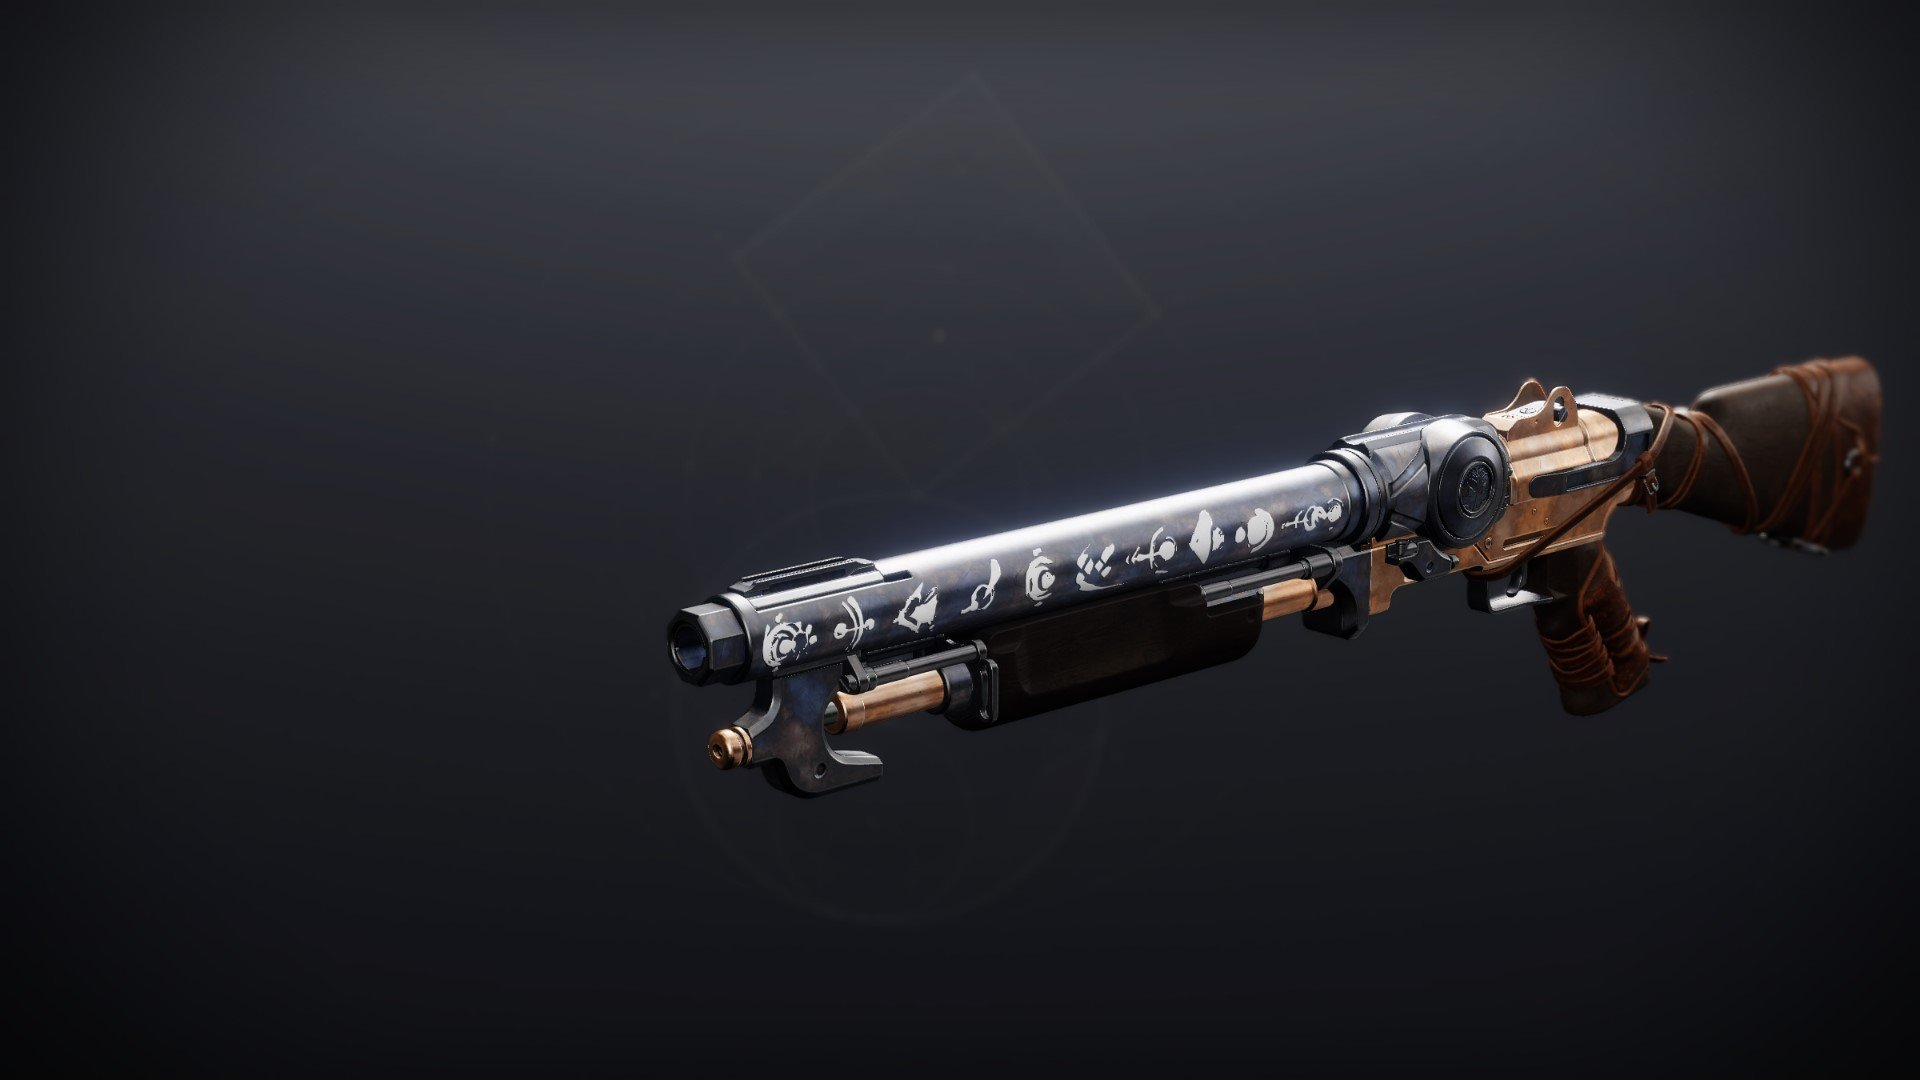 An in-game render of the Riiswalker.